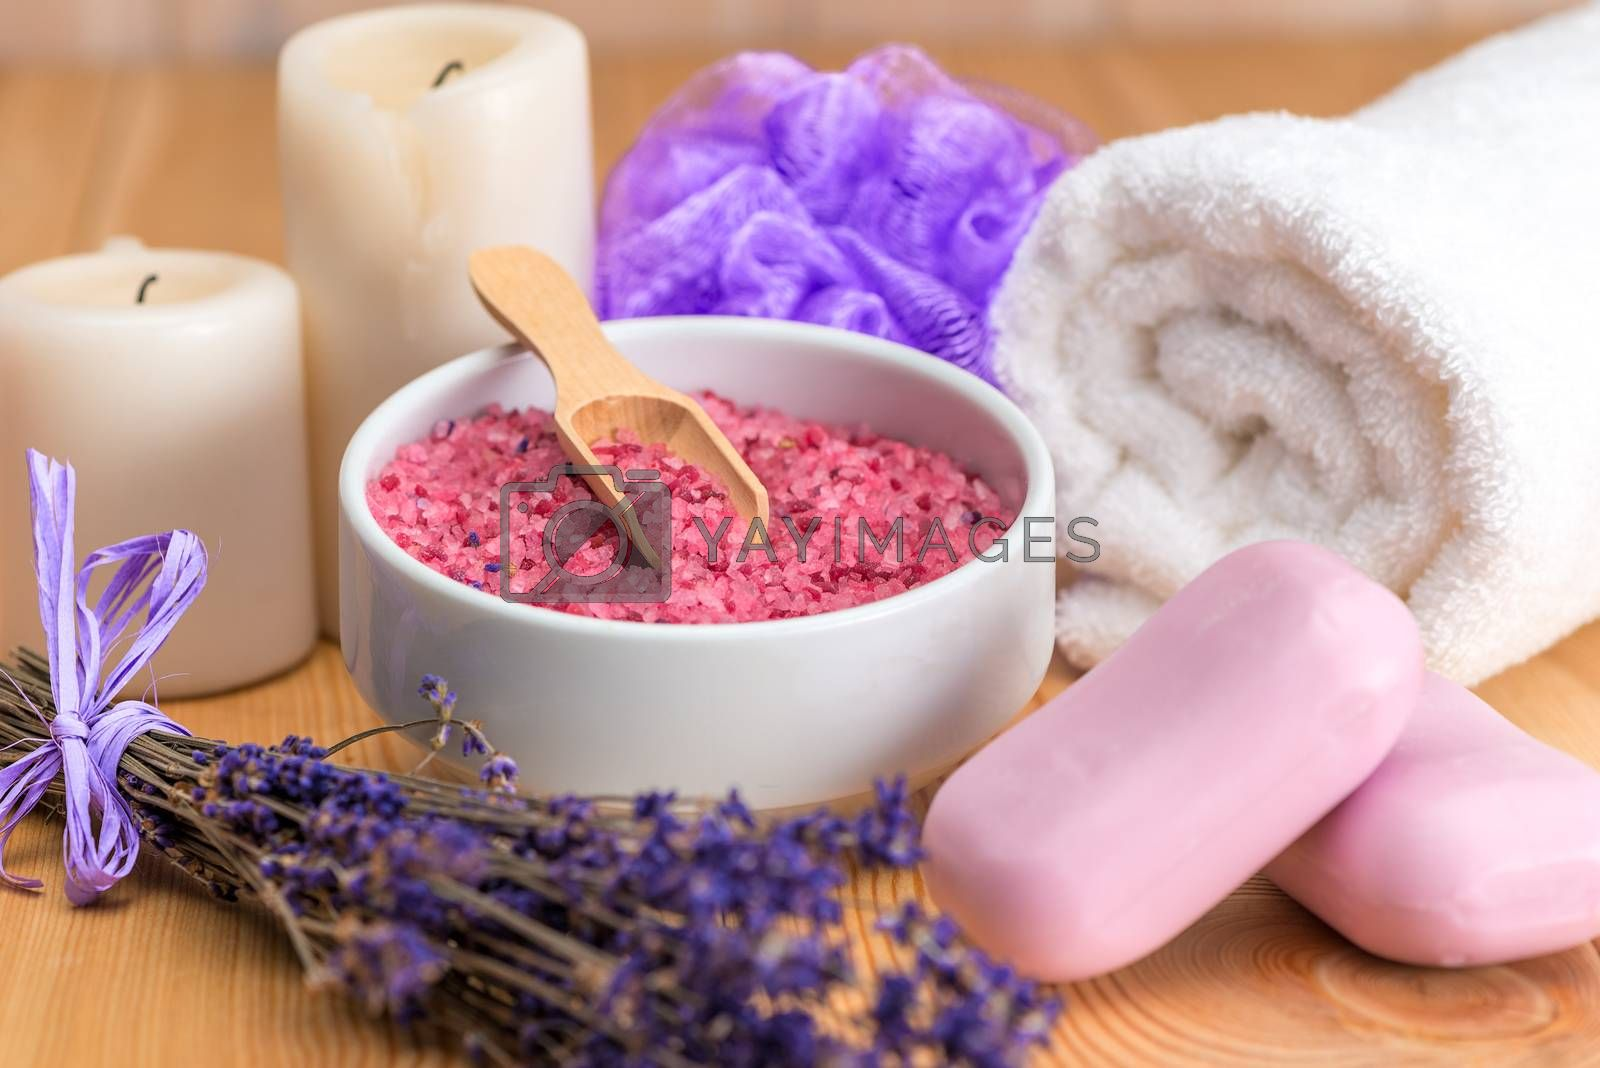 lavender cosmetics for spa treatments and relaxation close-ups by Labunskiy K.